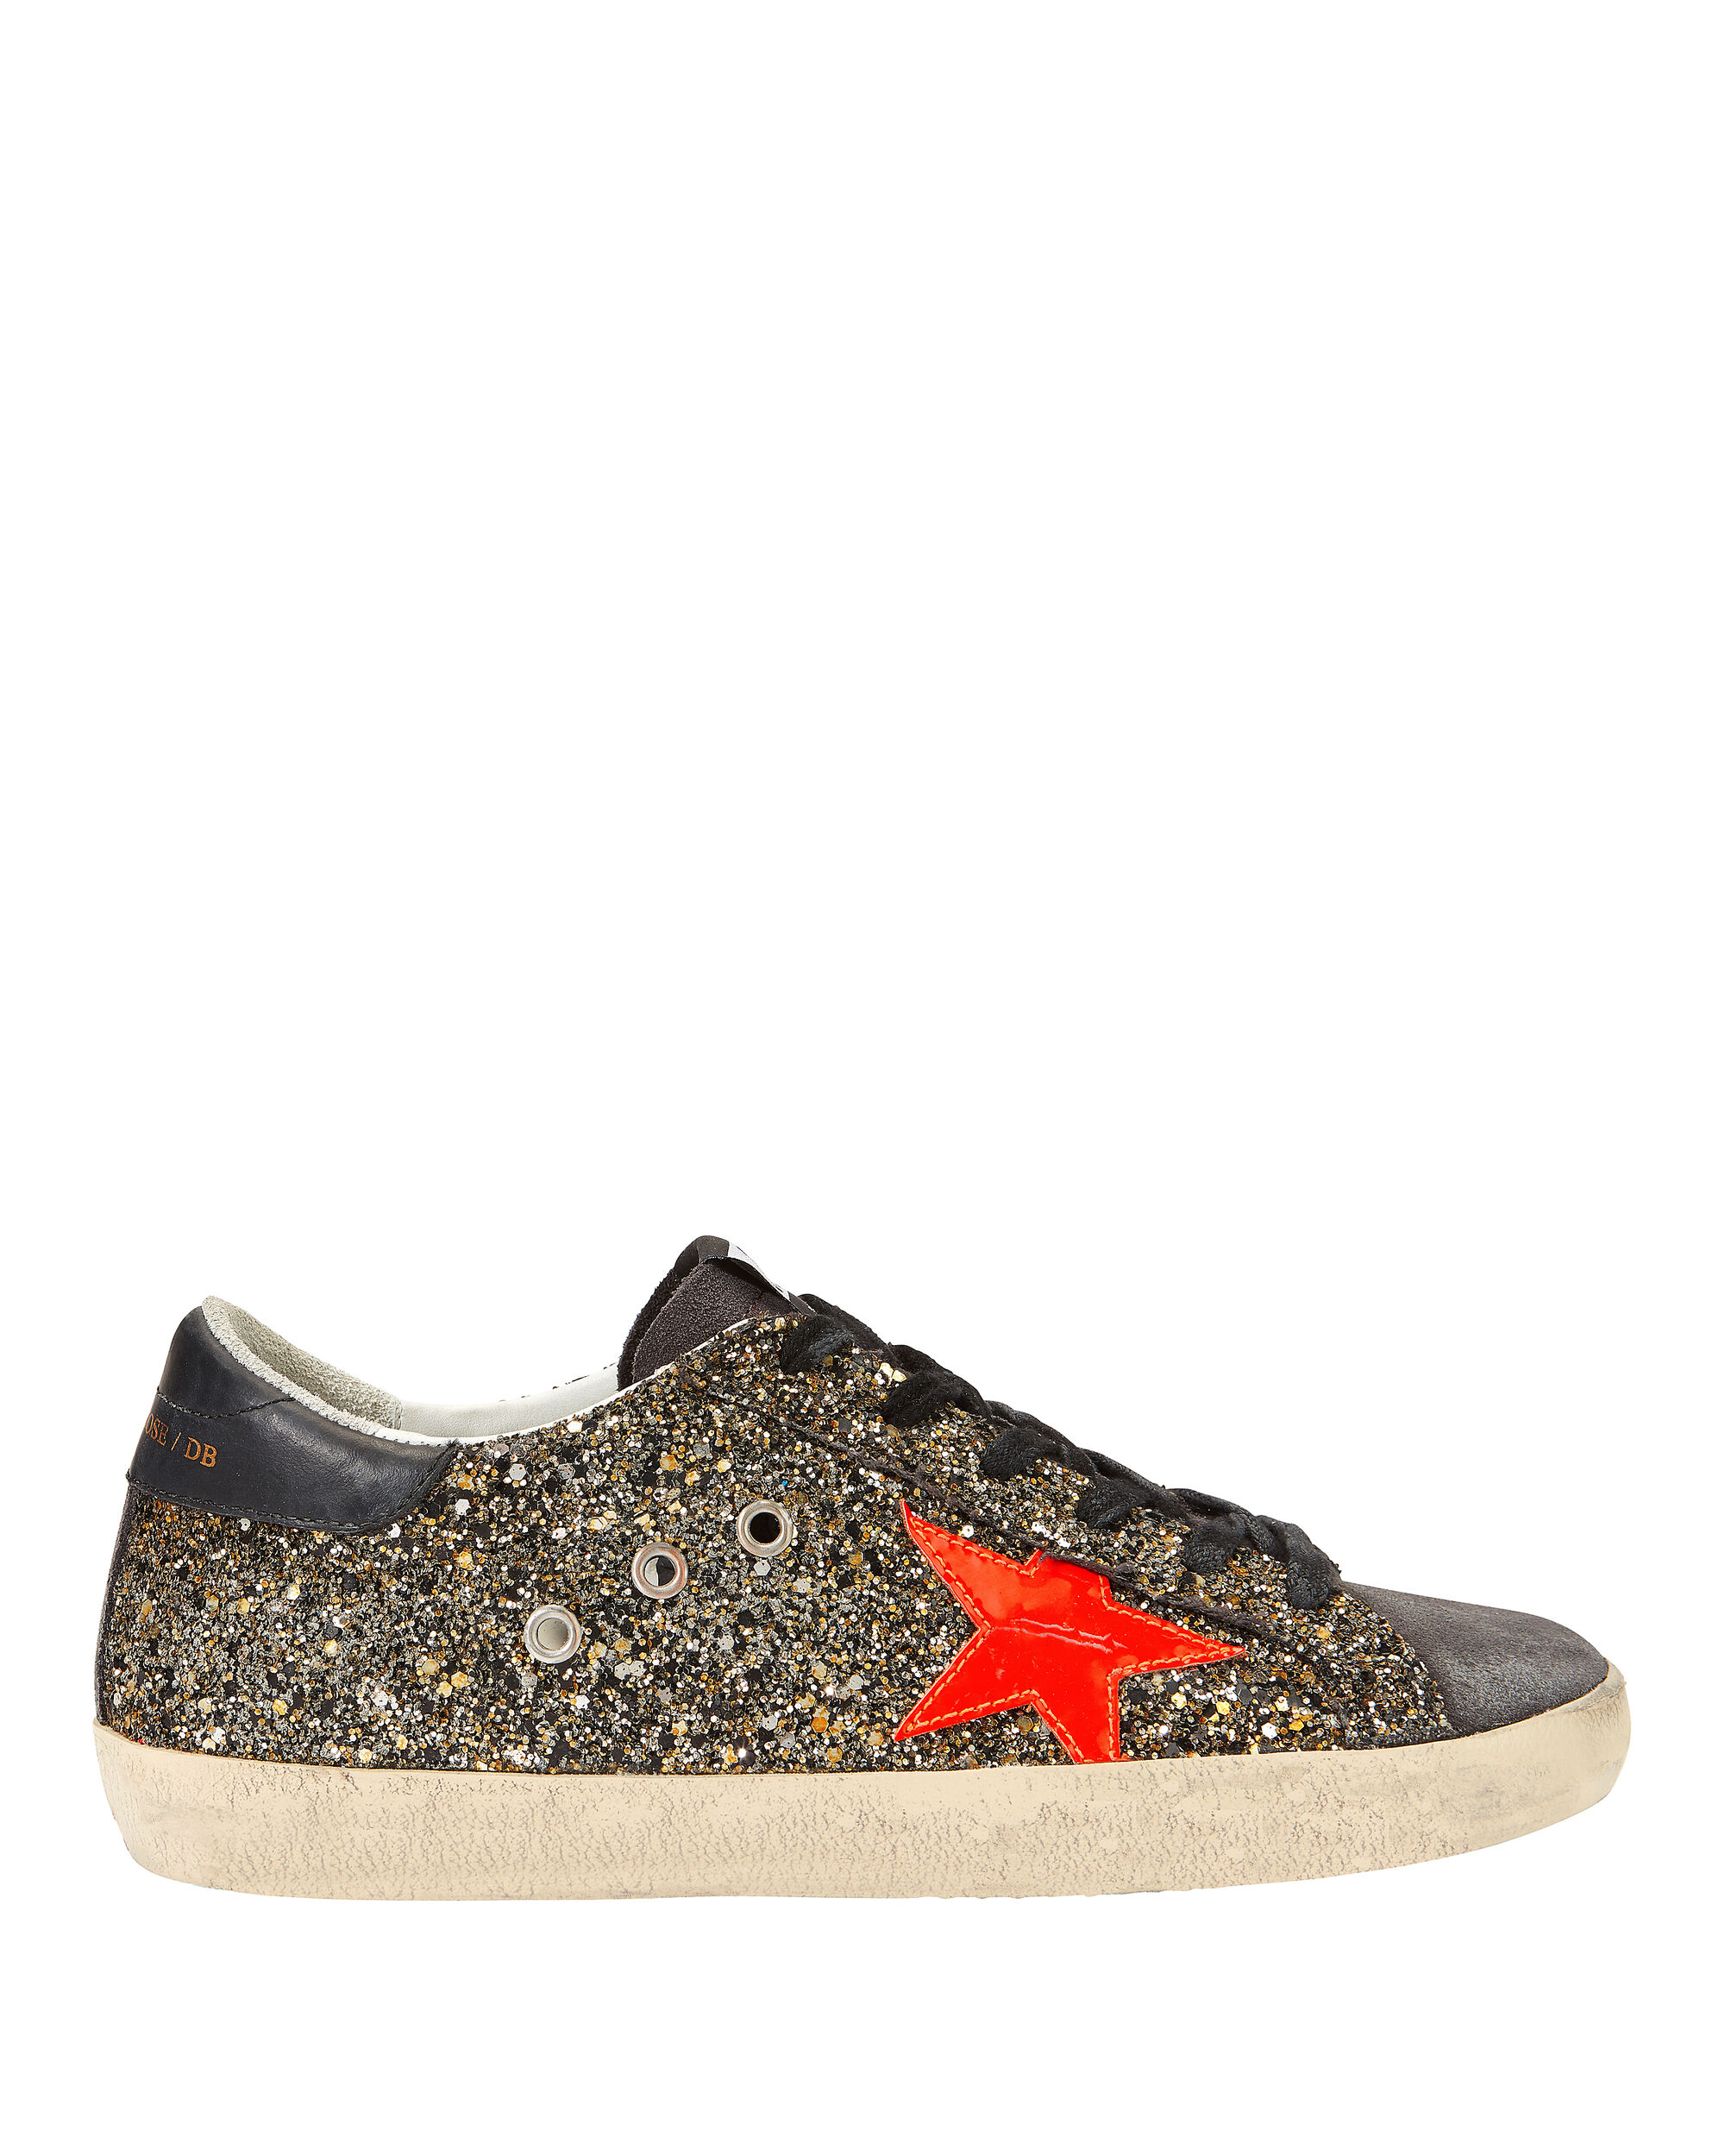 Superstar Black And Gold Glitter Low-Top Sneakers, BLACK, hi-res